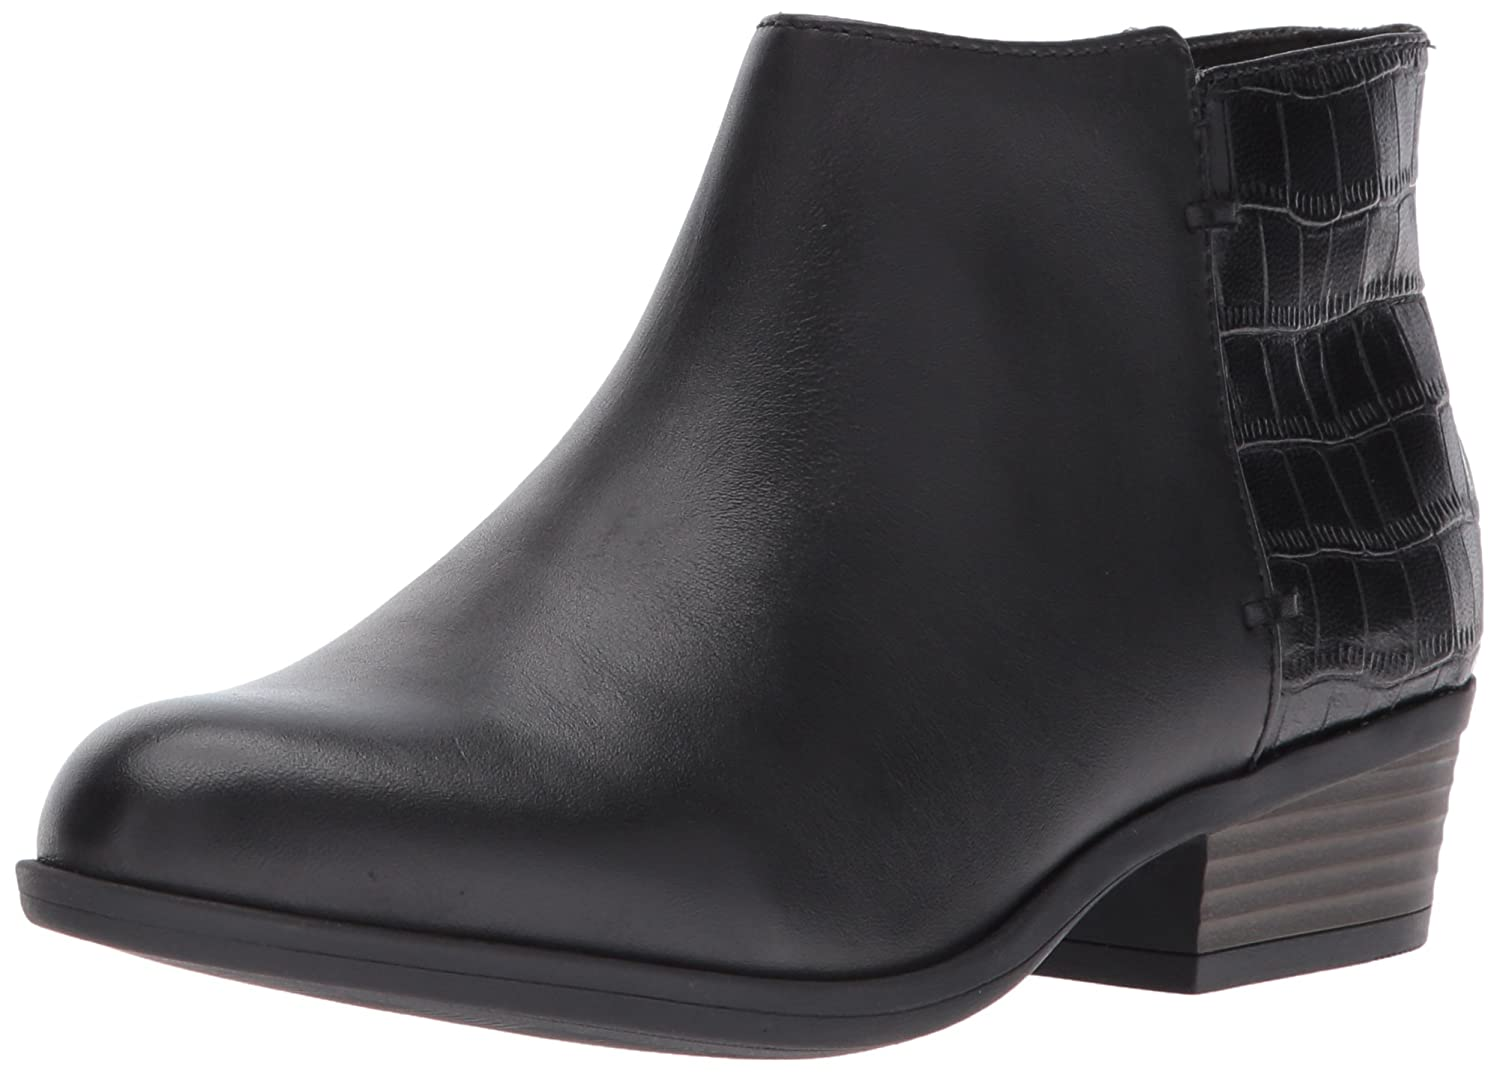 CLARKS Women's Addiy Zora Ankle Bootie B01N6J6GGX 9.5 B(M) US|Black Leather